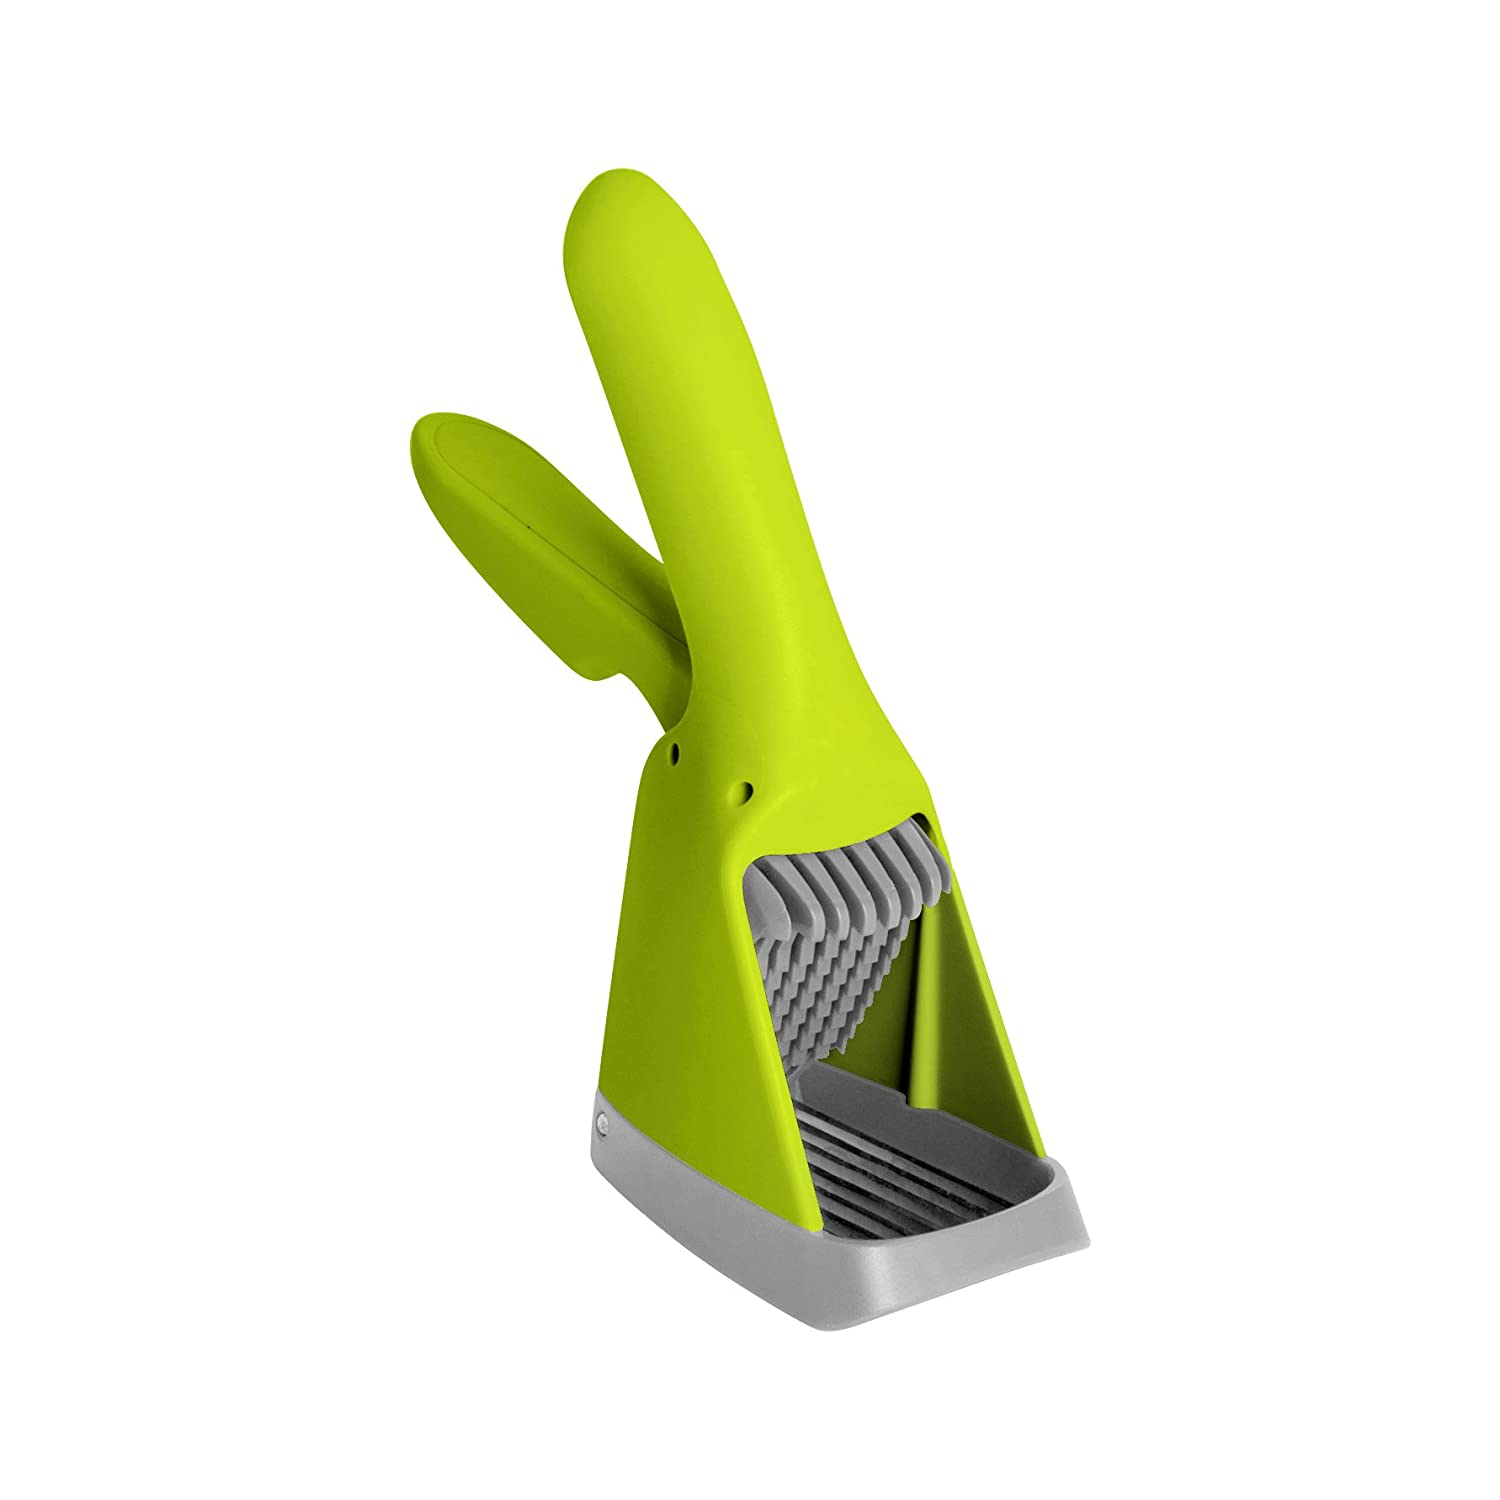 Boon Slicer Hand-Held Fruit and Vegetable Slicer, Green/Gray B390